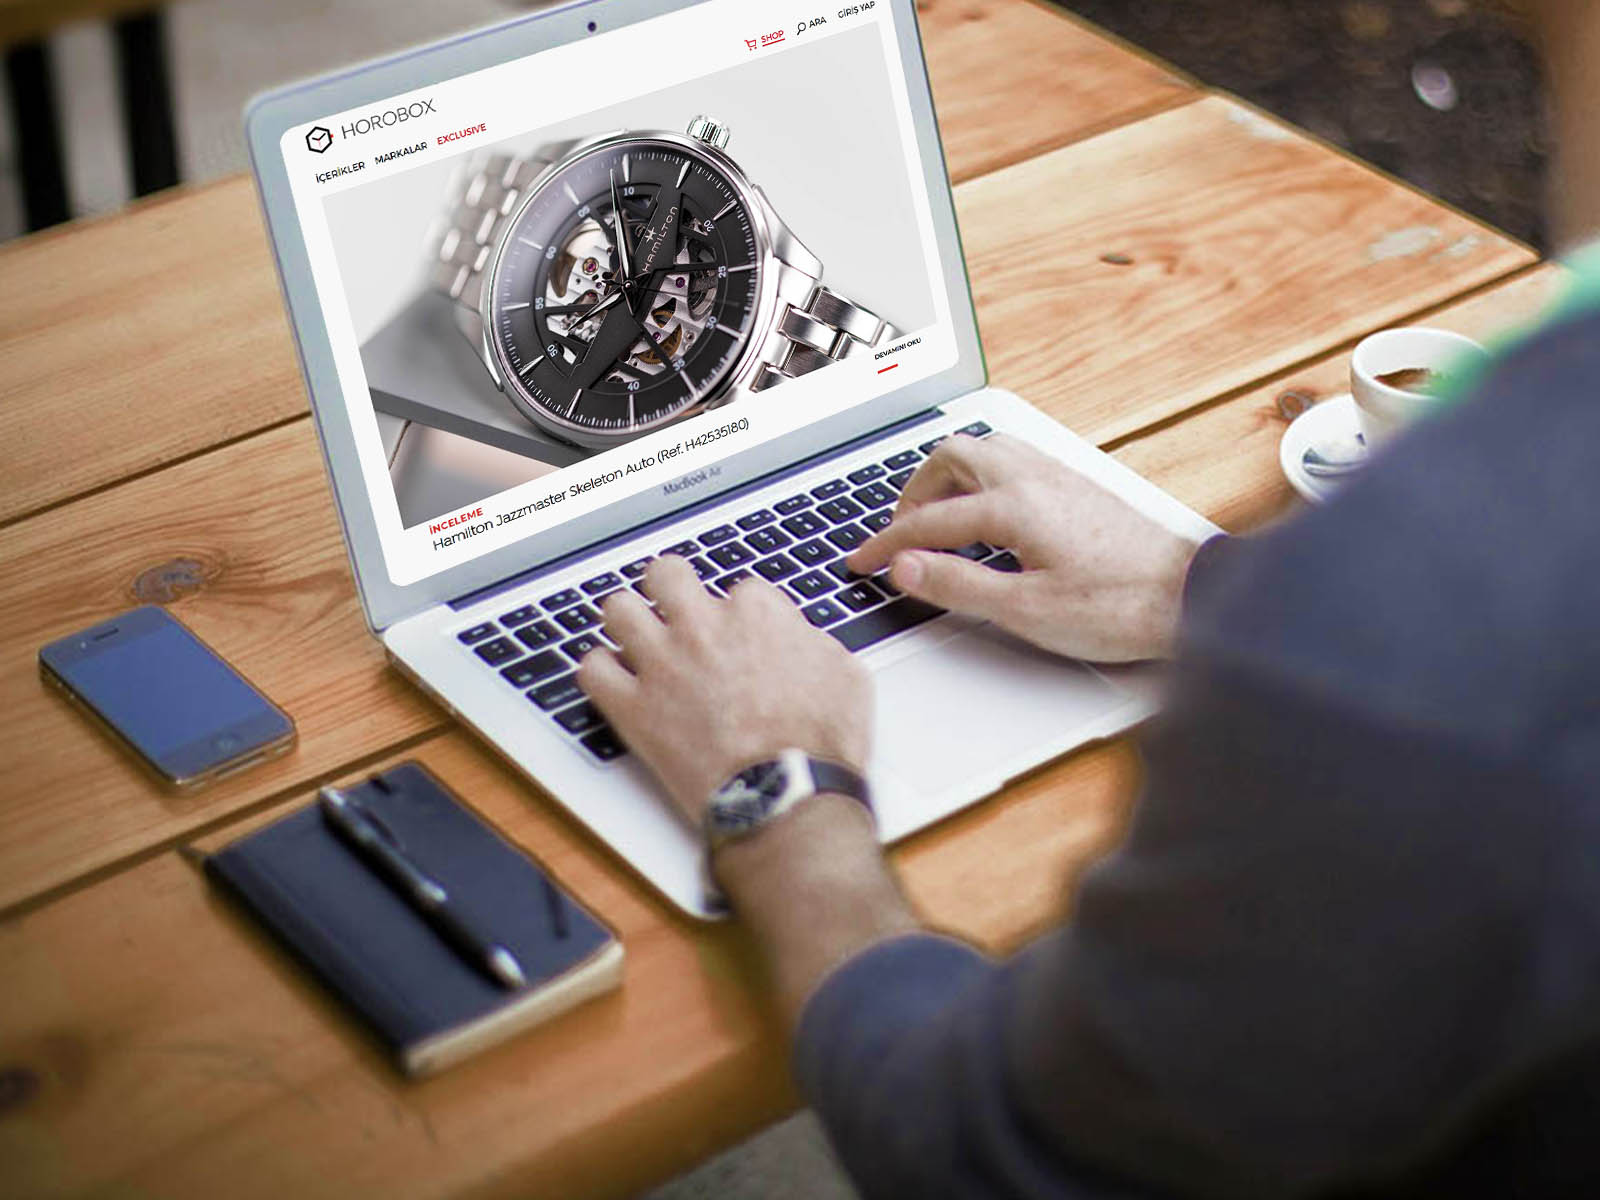 choosing-watches-and-the-social-media-effect-3.jpg